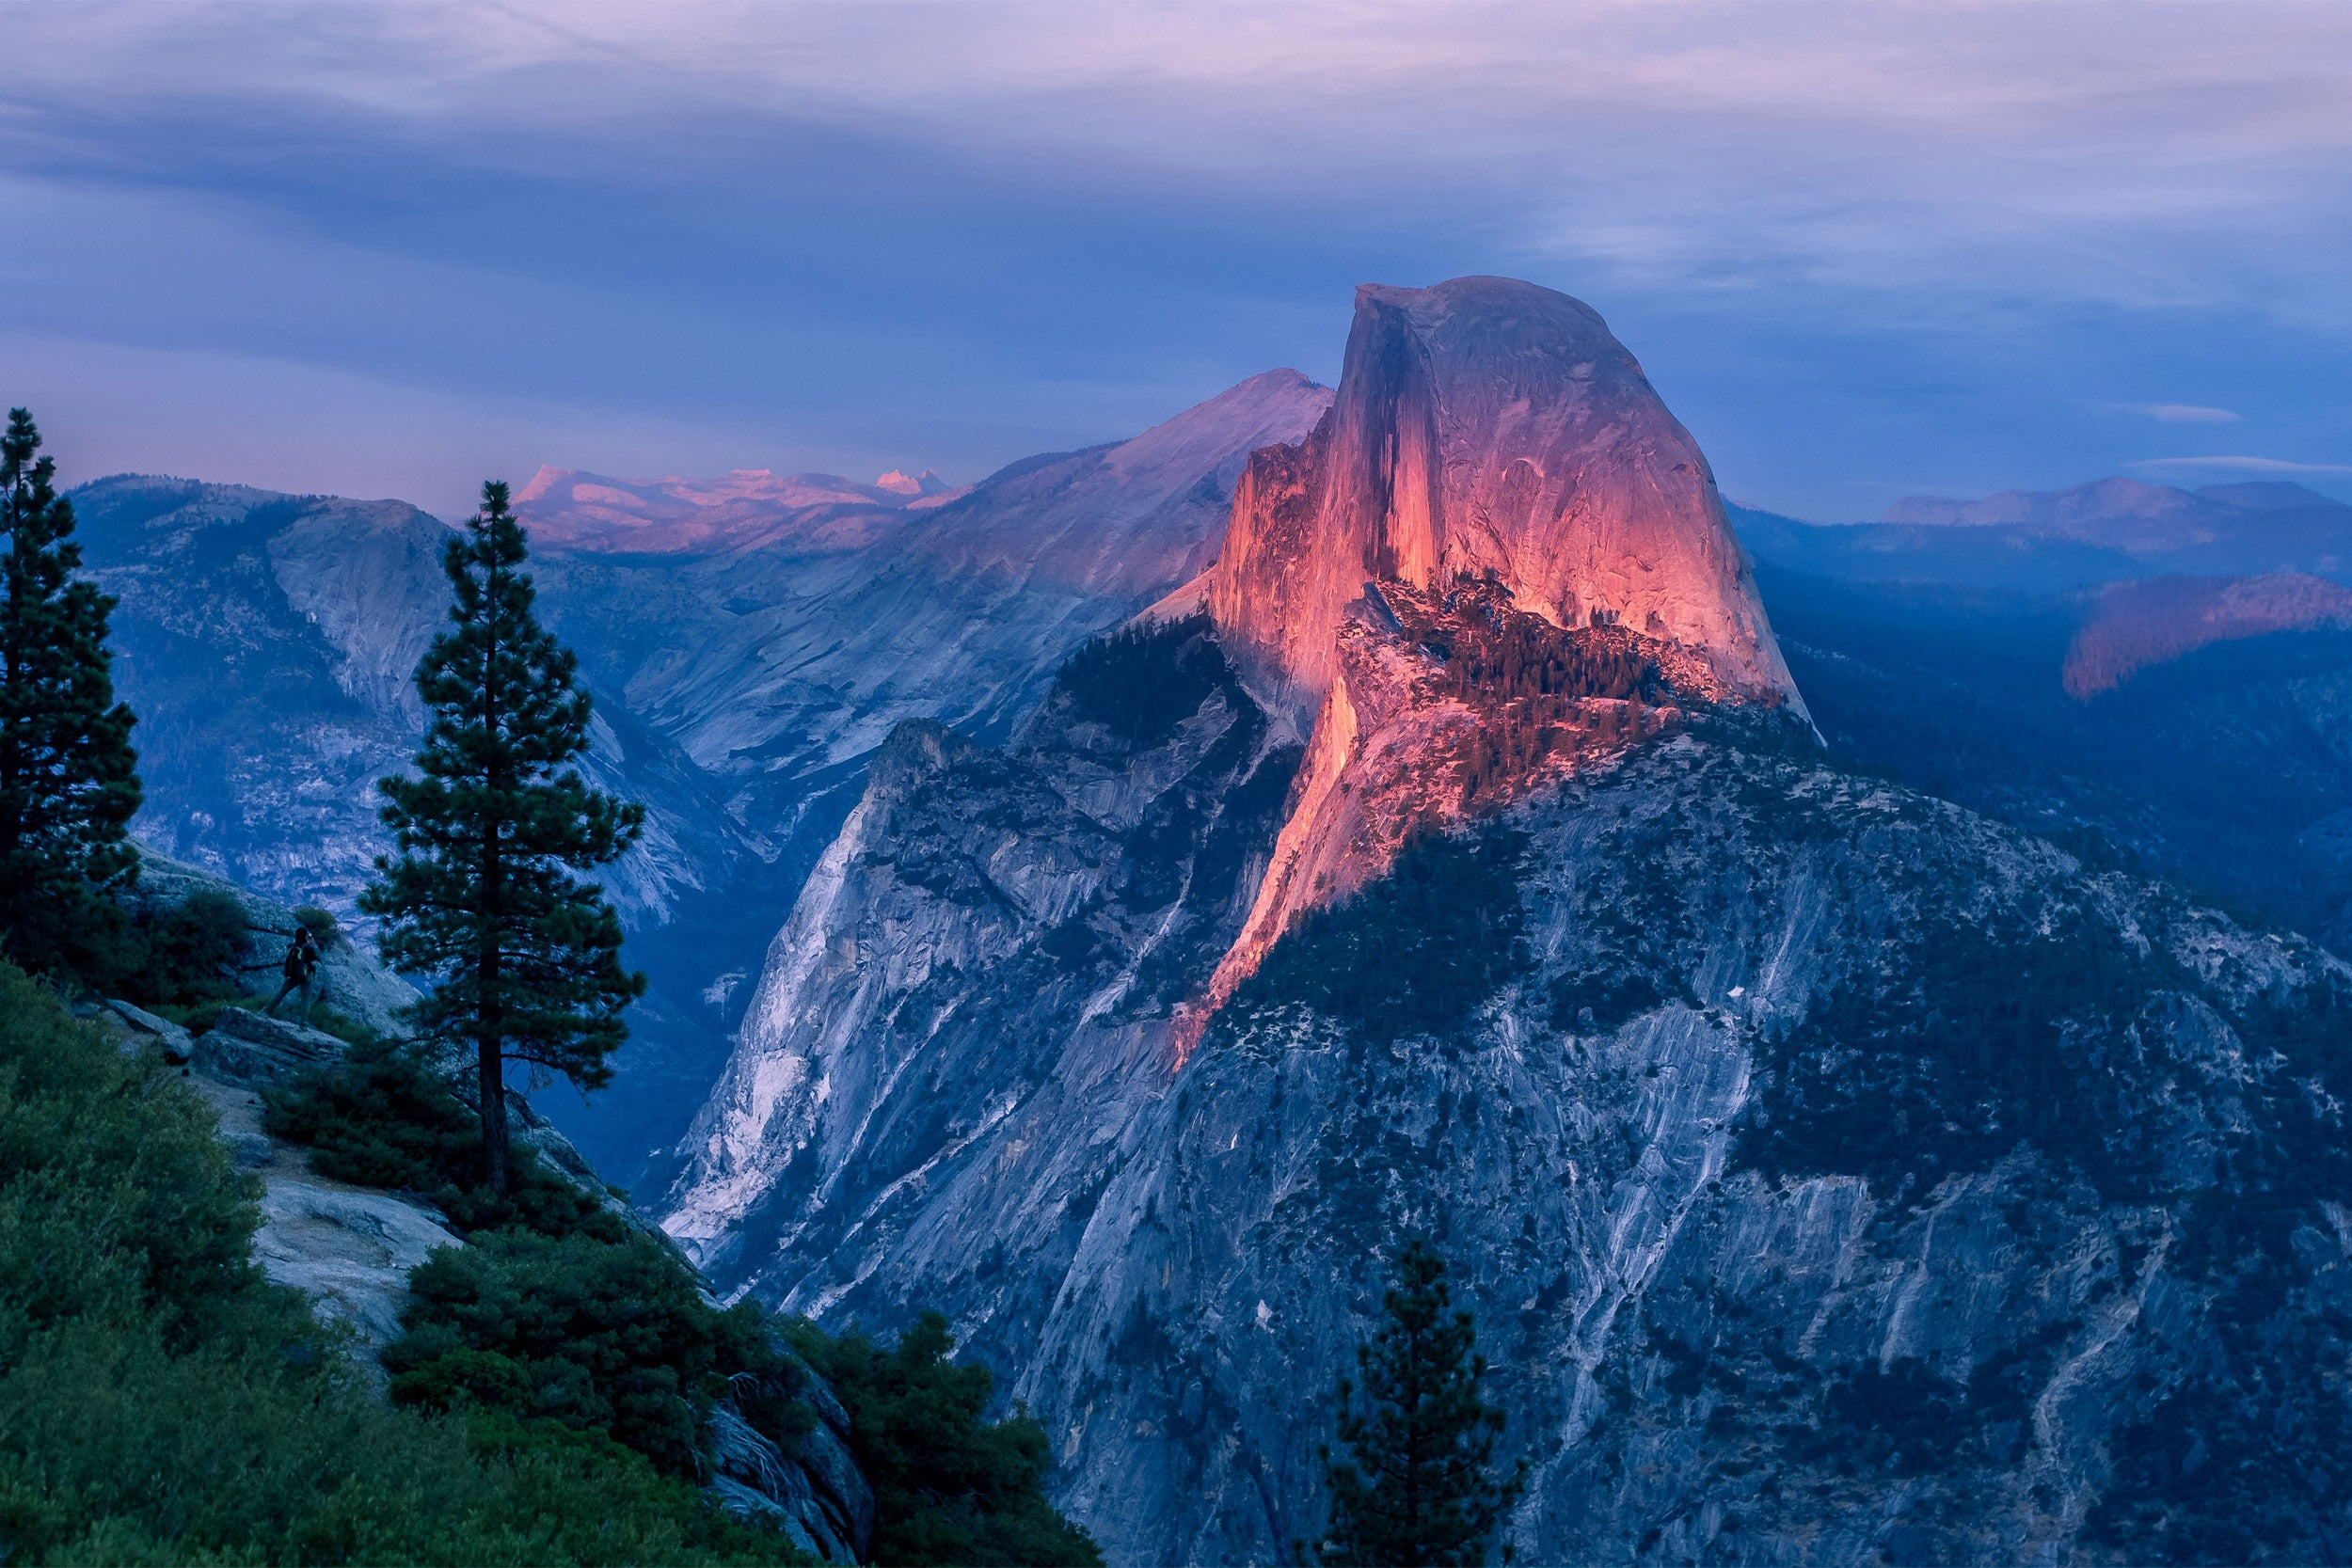 Report looks into U.S. national parks budgeting woes